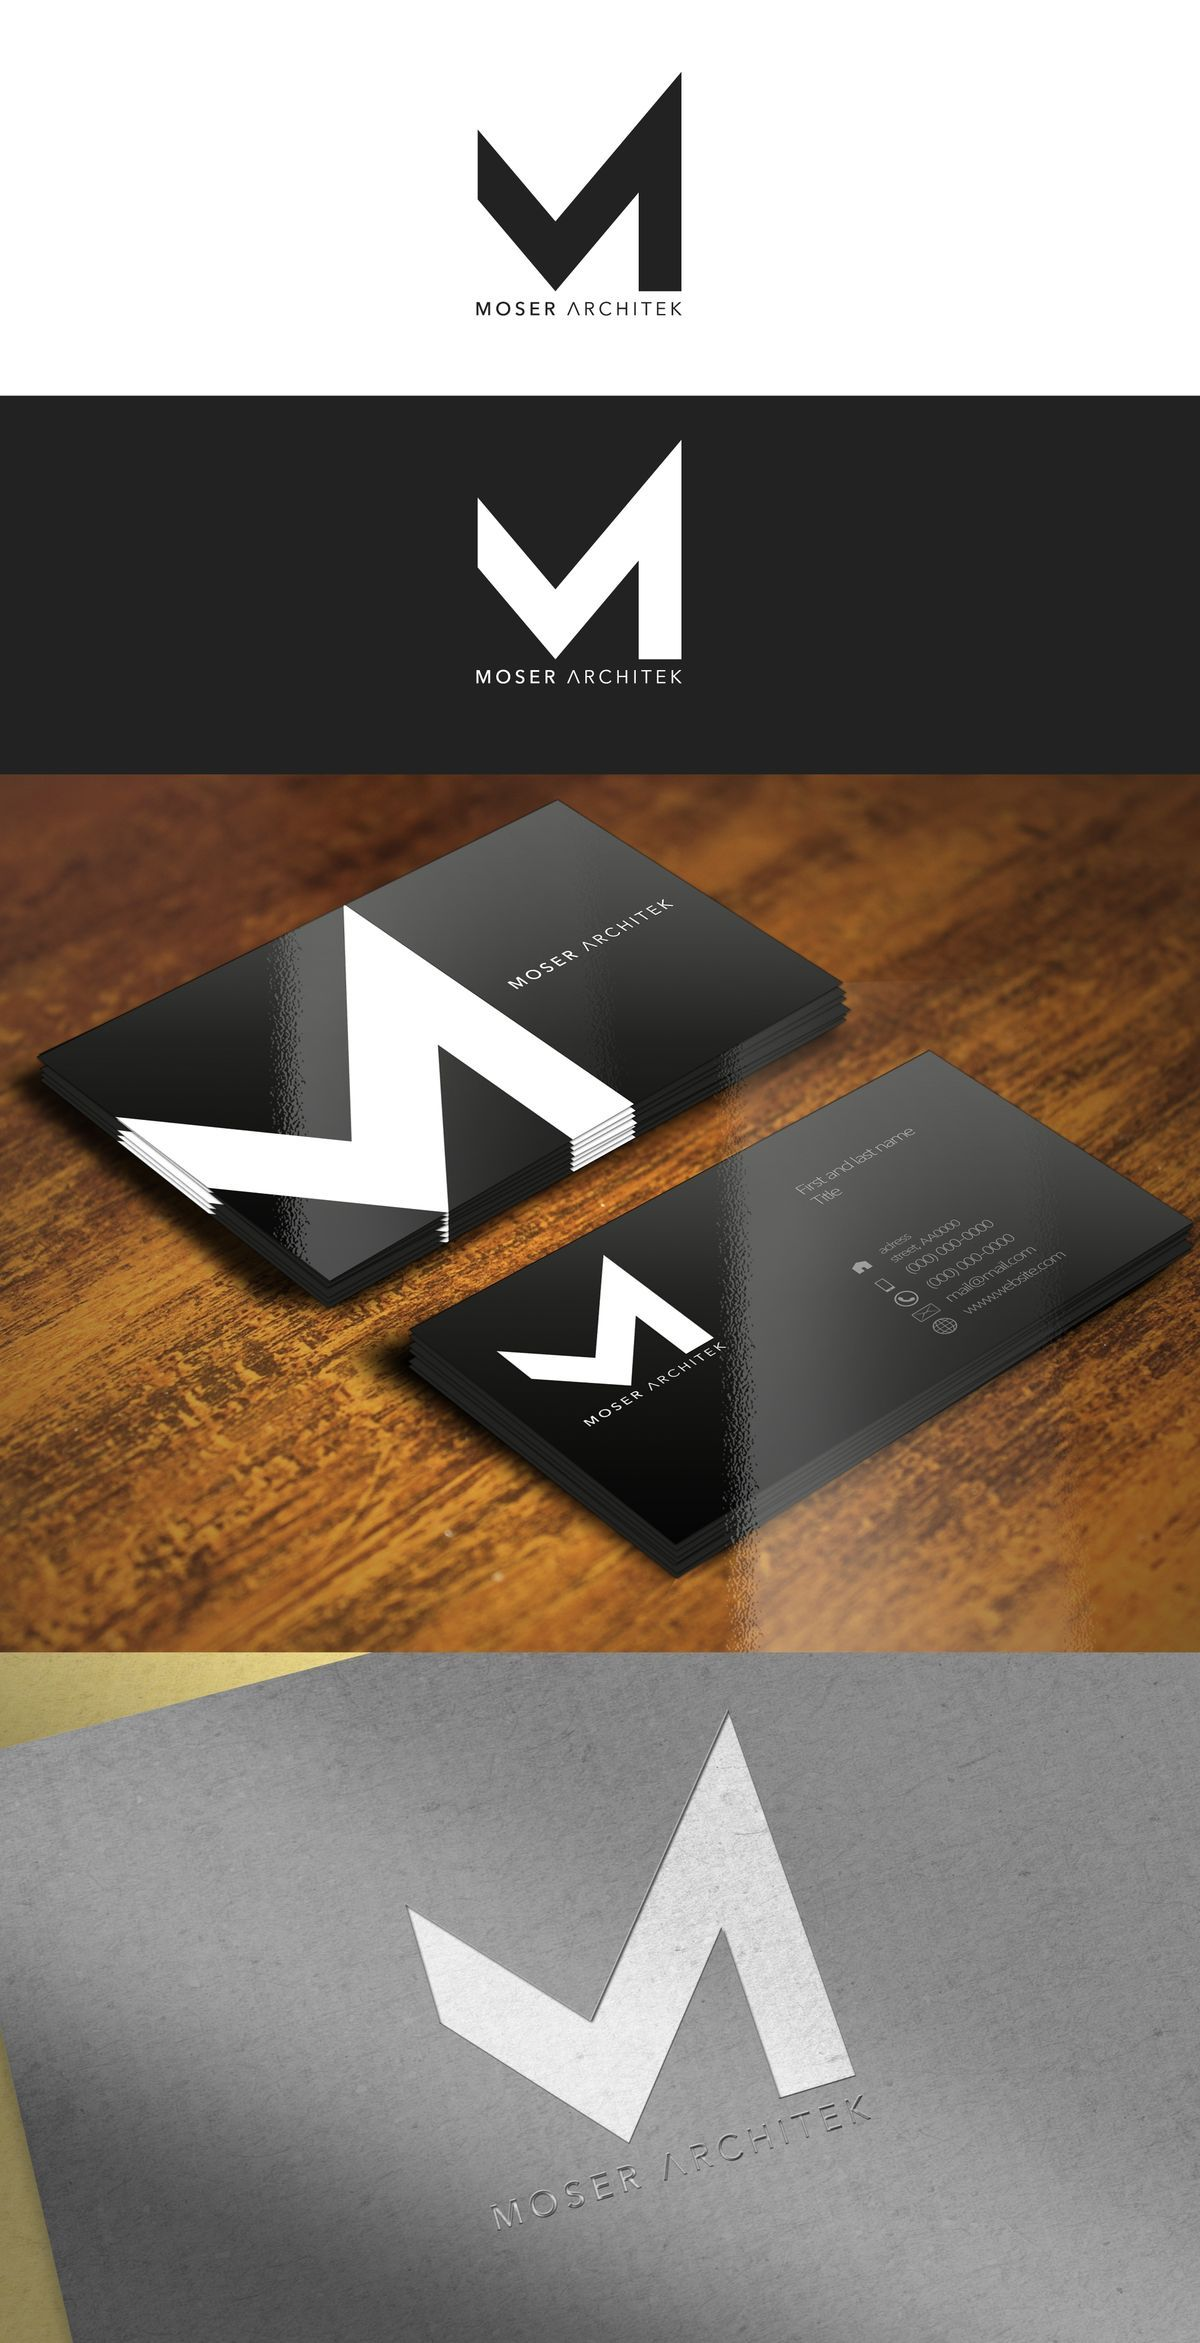 Minimalism for an architect. Ultimate Graphics Designs is